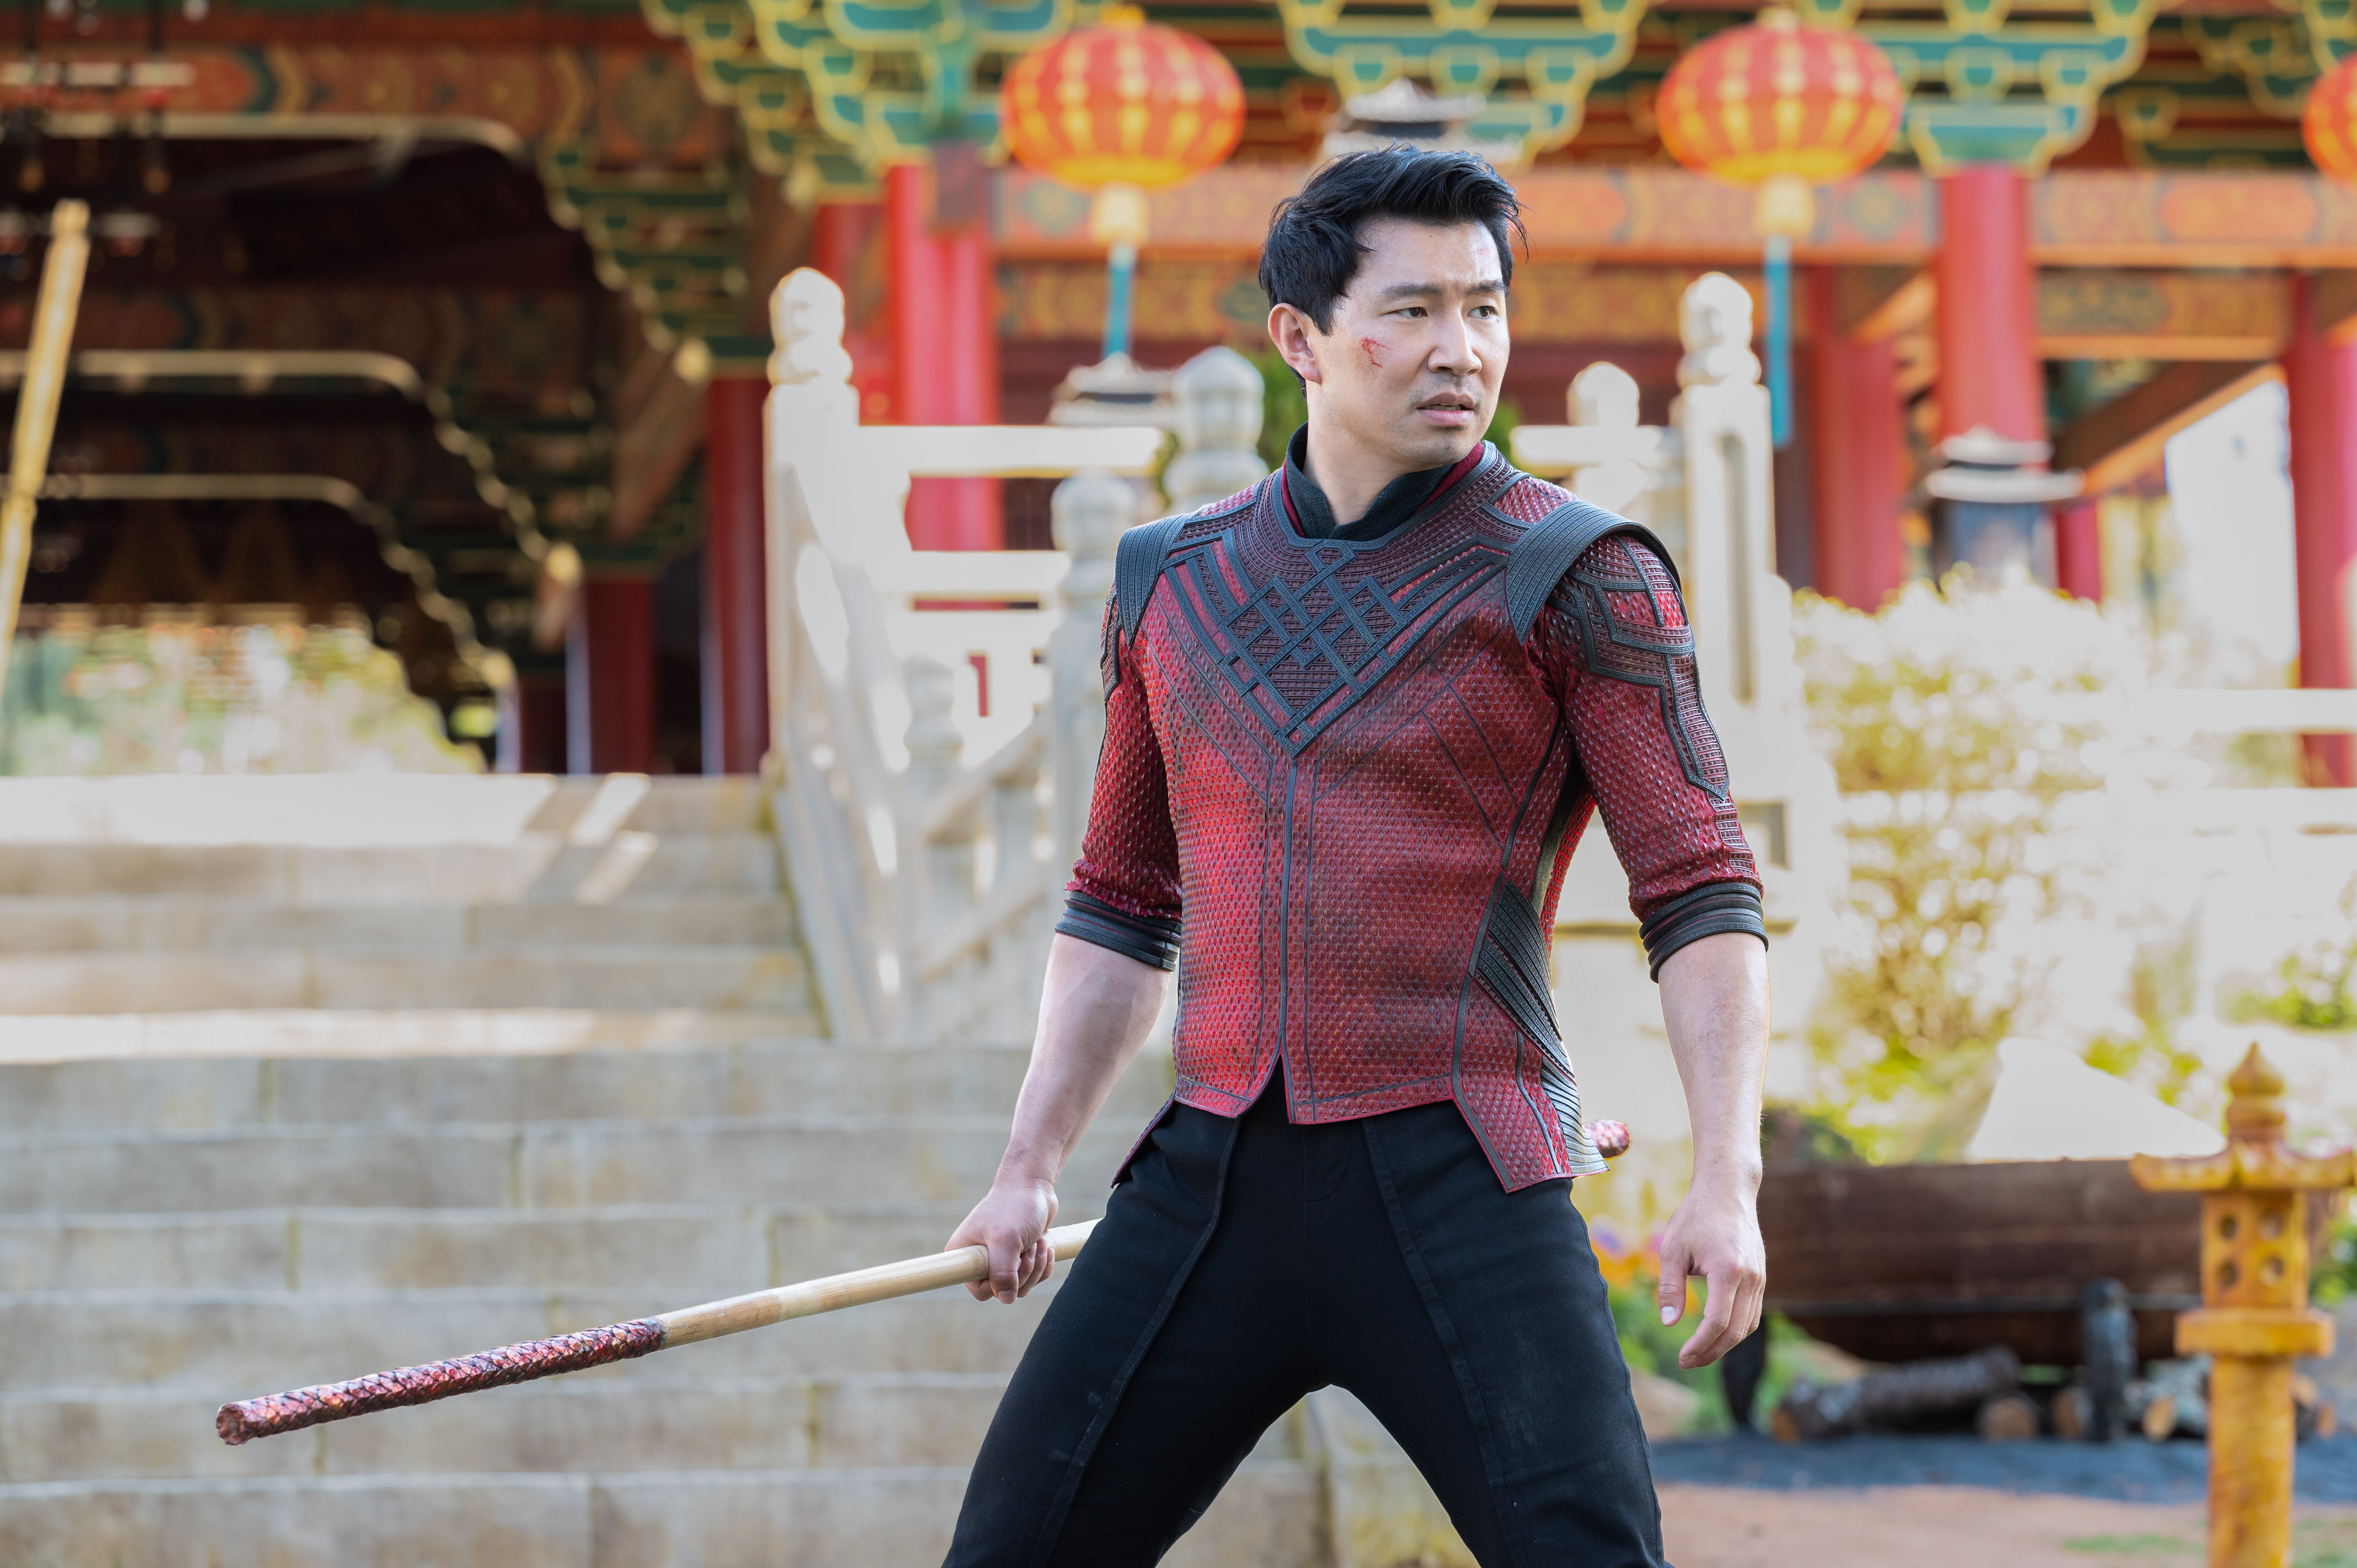 Shang-Chi and the Legend of the Ten Rings: Disney Plus Date for New Marvel Movie